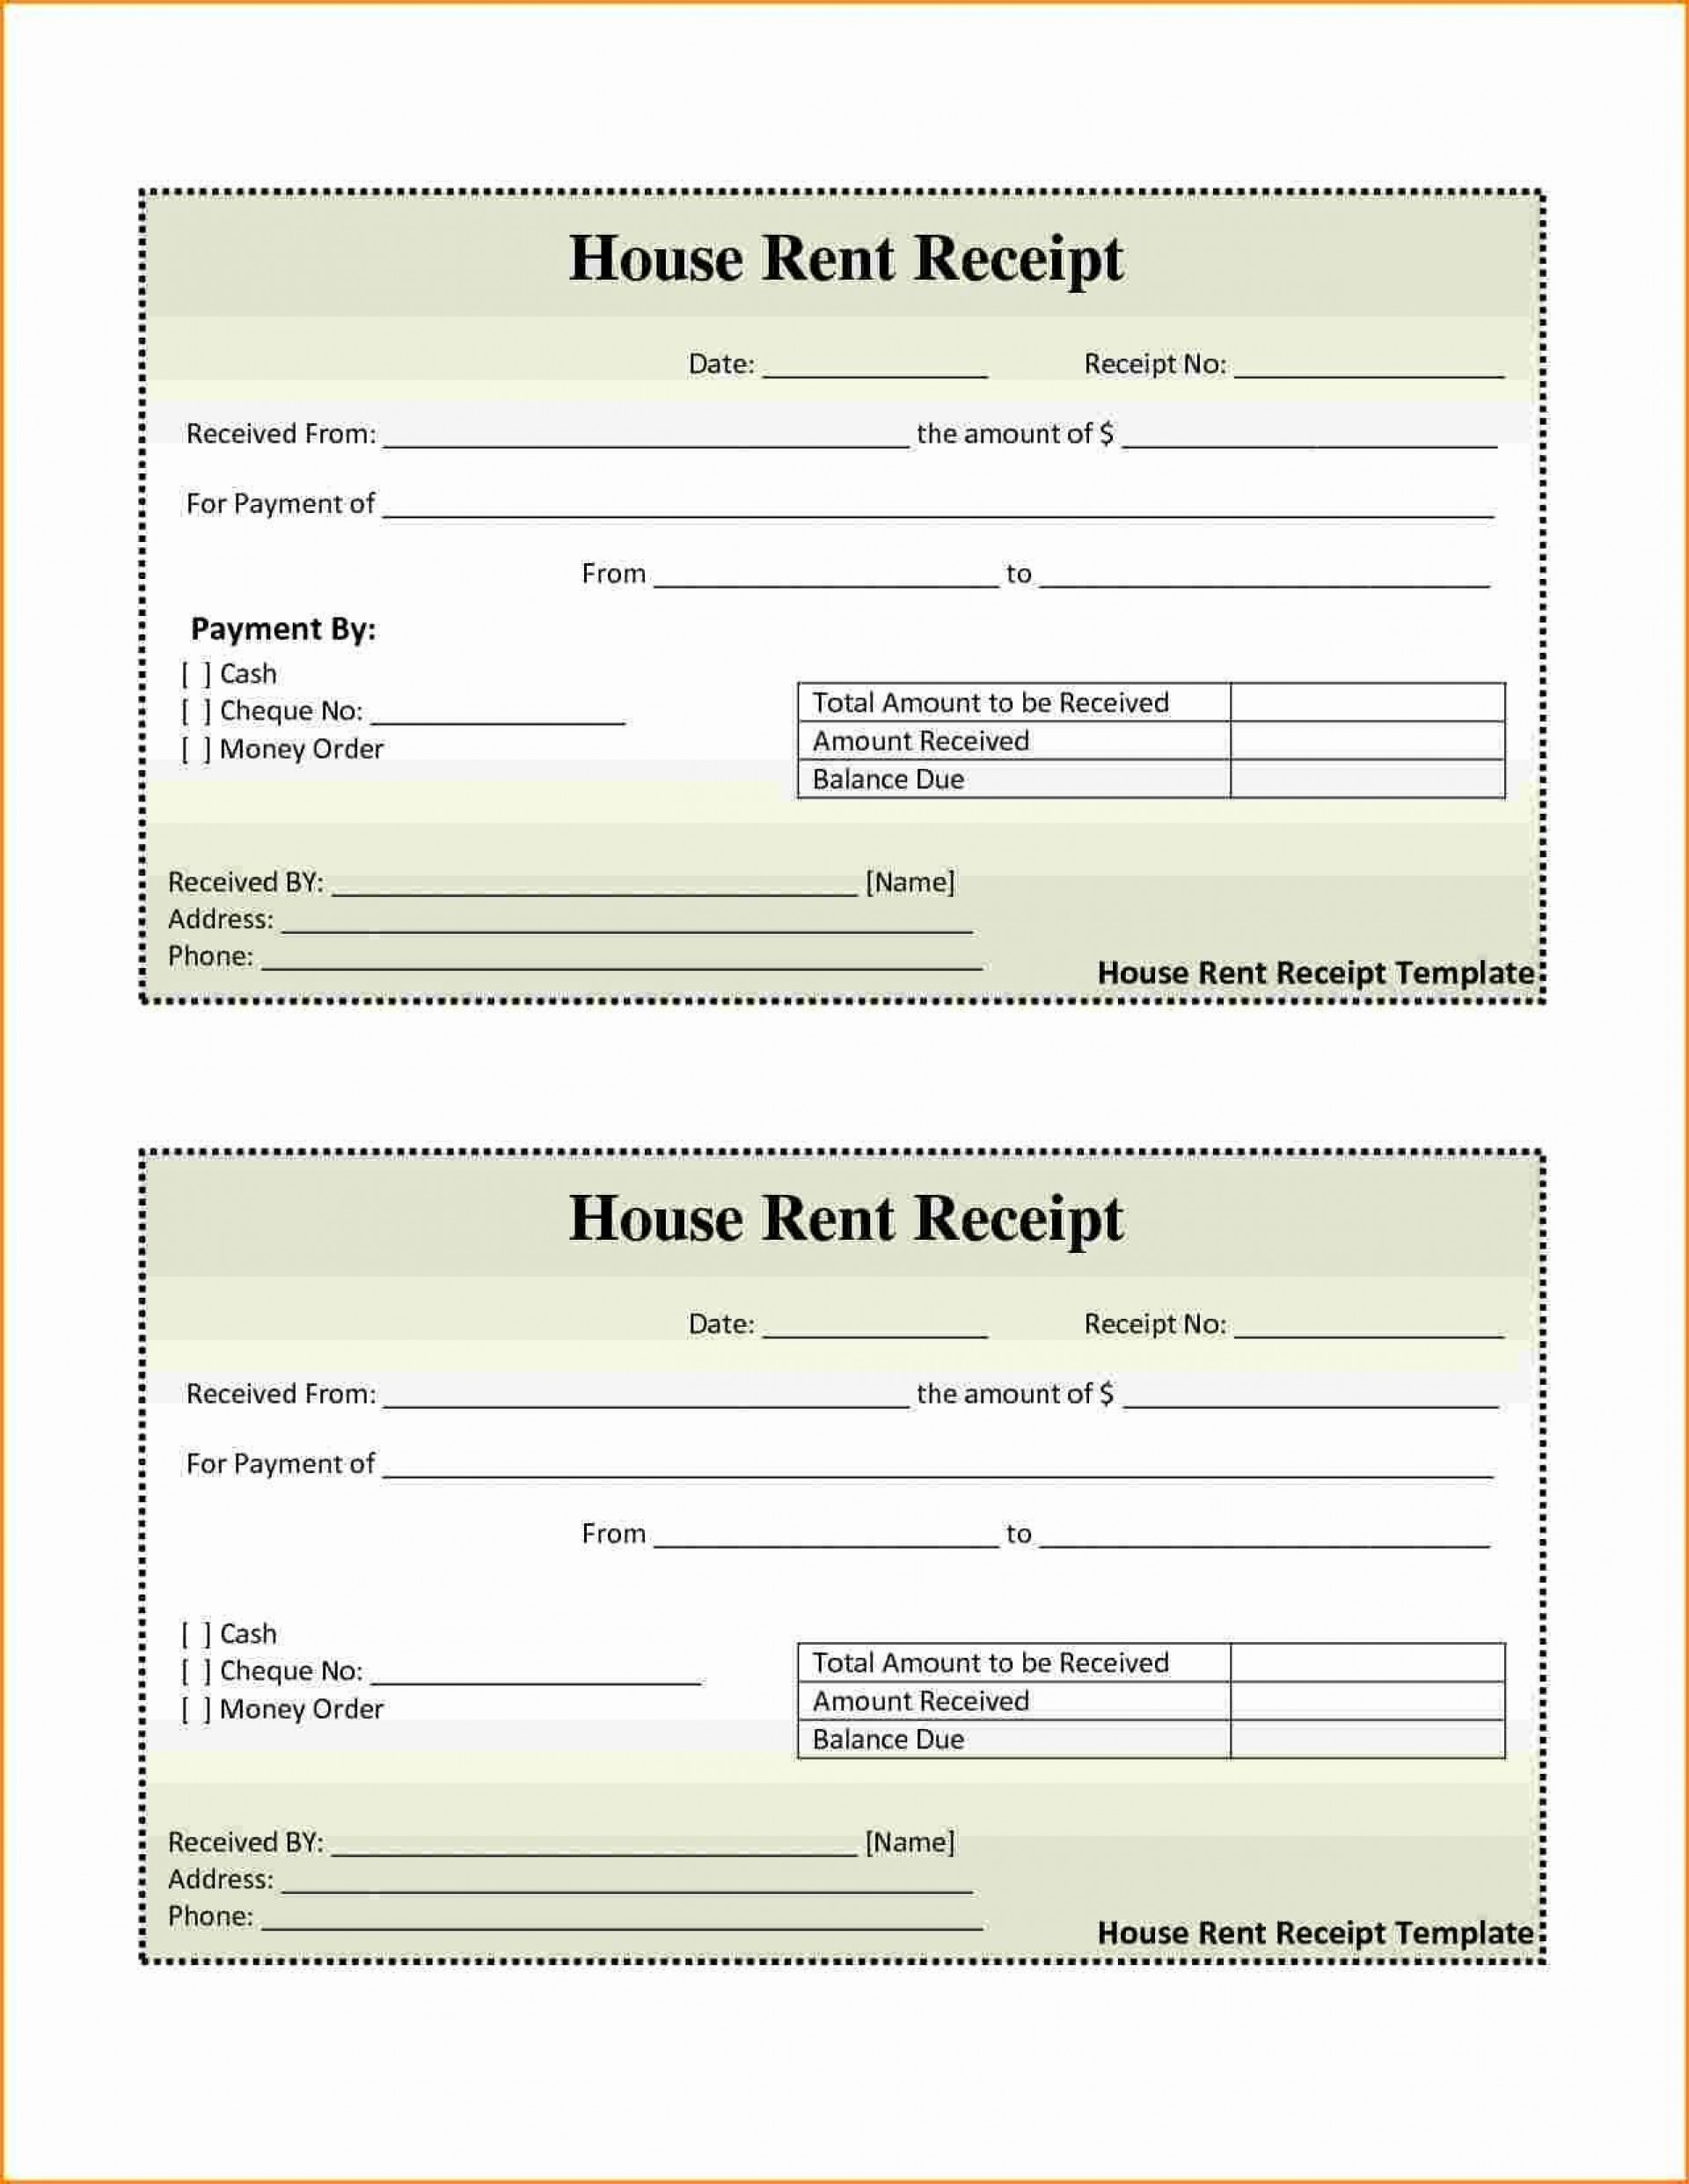 001 Awesome House Rent Receipt Sample Doc Idea  Template India Bill Format Word Document Pdf Download1920